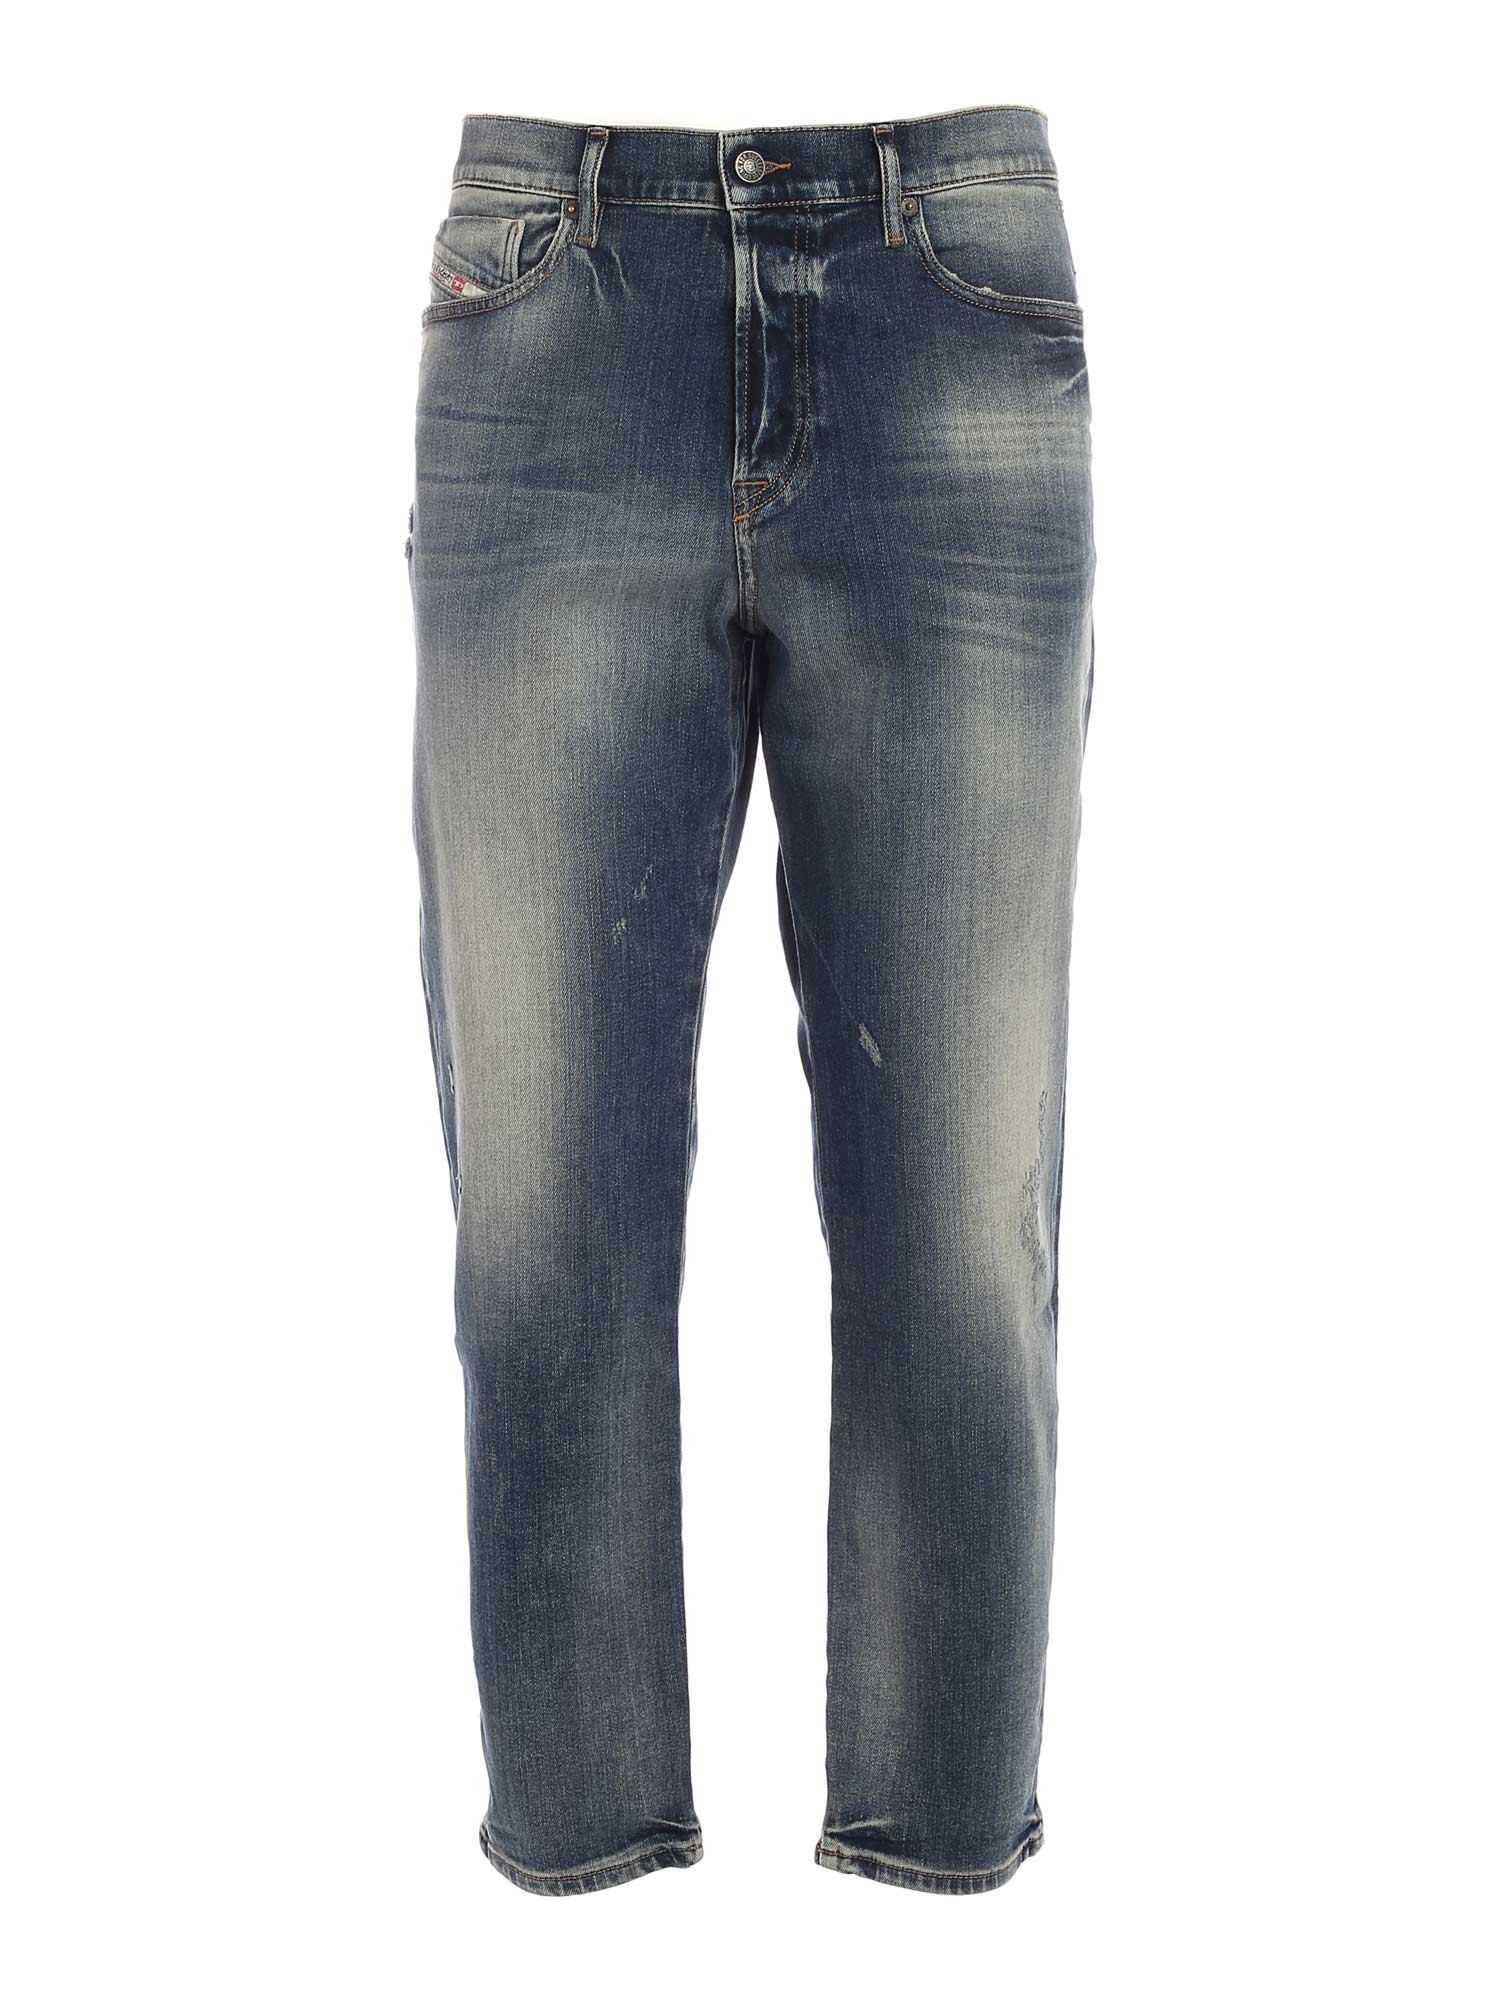 Diesel D-FINING JEANS IN BLUE